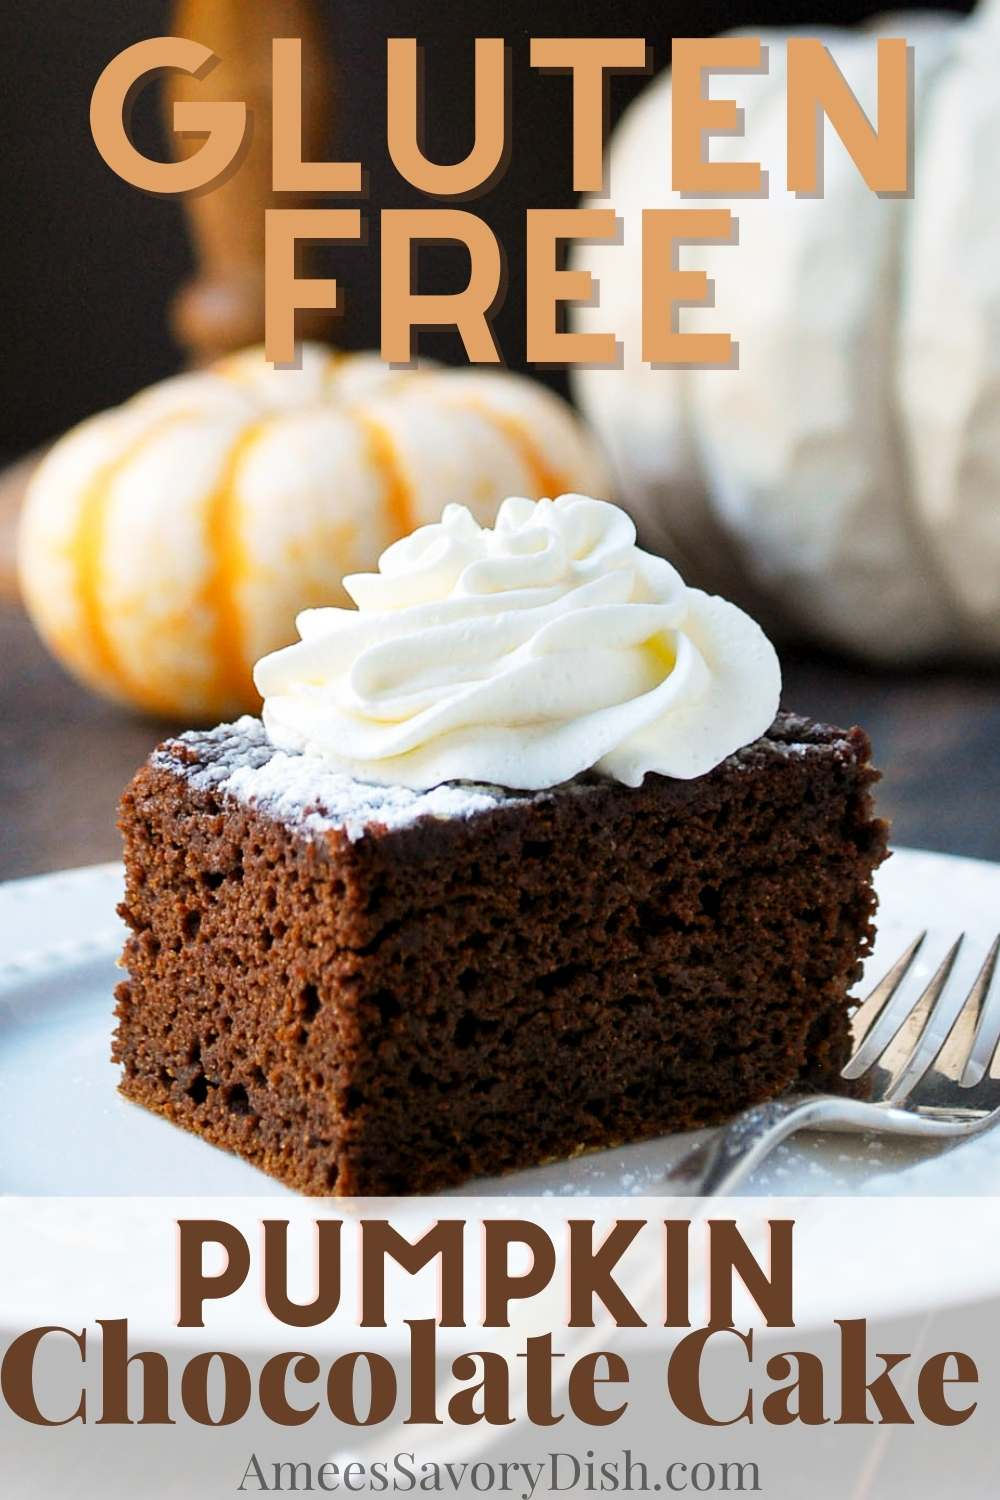 This Gluten-free Pumpkin Chocolate Cake has the perfect balance of cocoa and pumpkin spice -and is nothing short of amazing! via @Ameessavorydish